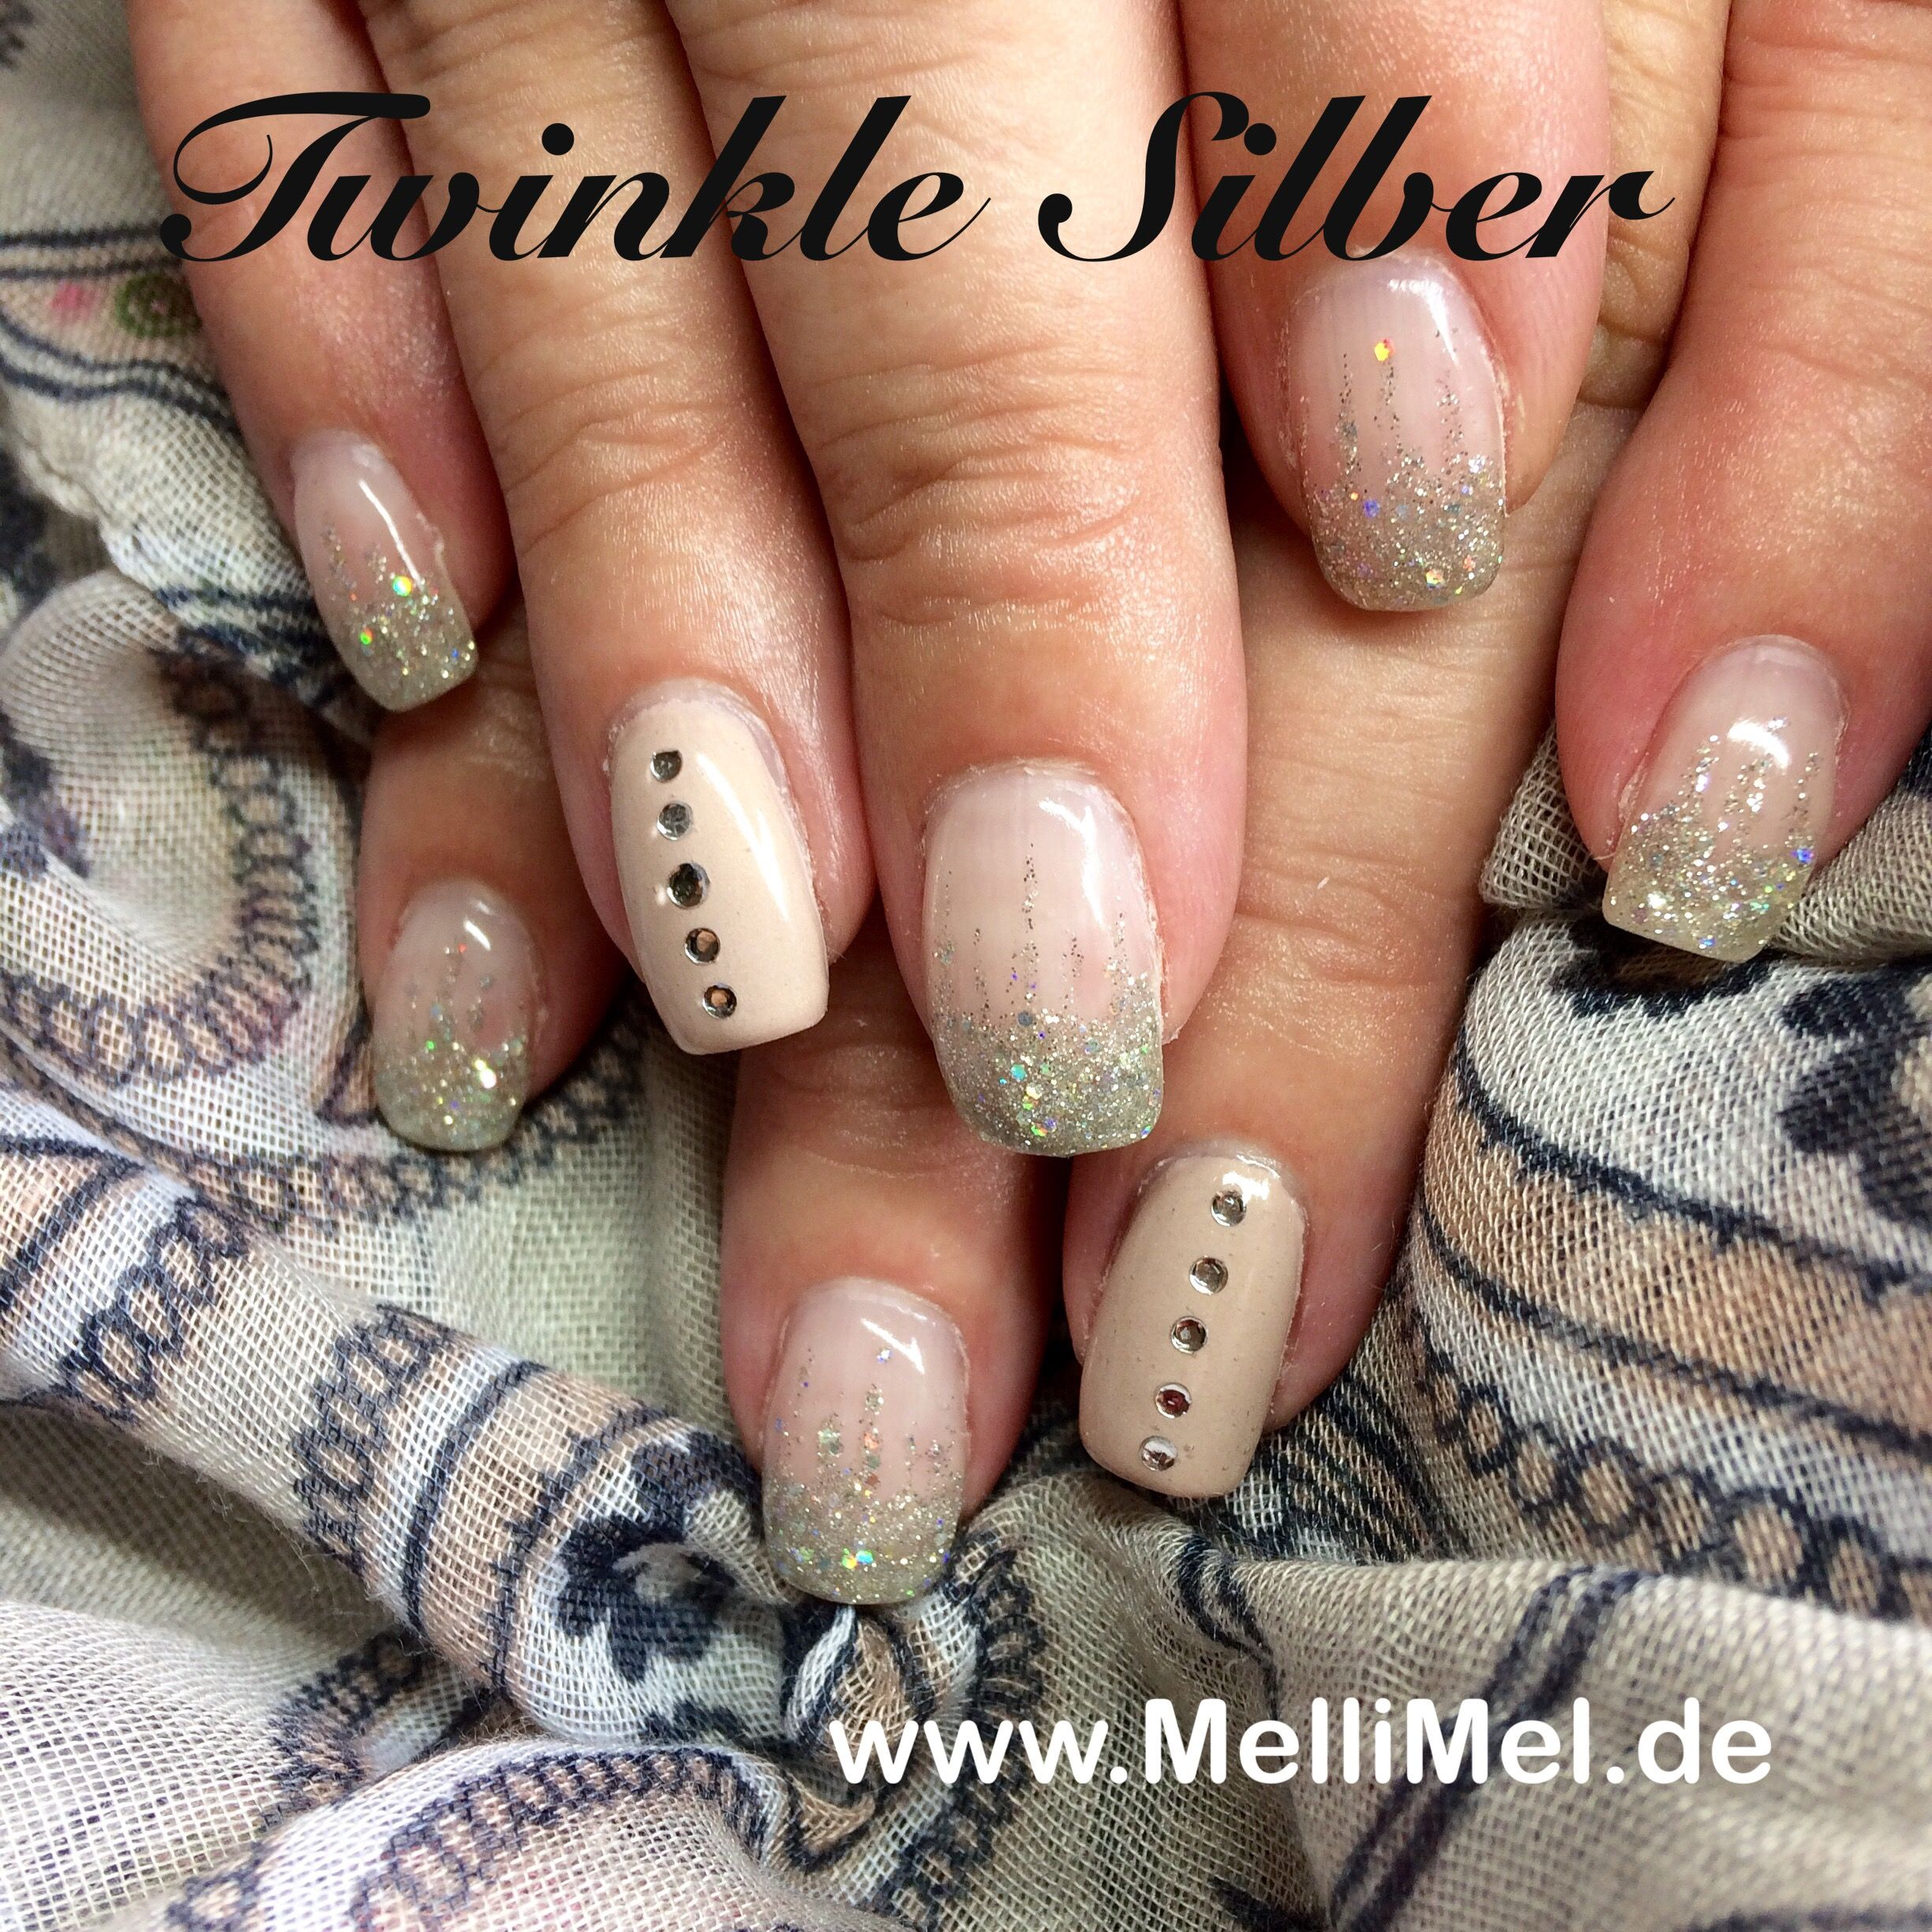 Nailart Nageldesign in nude mit glitzer | Nailart by MelliMel ...